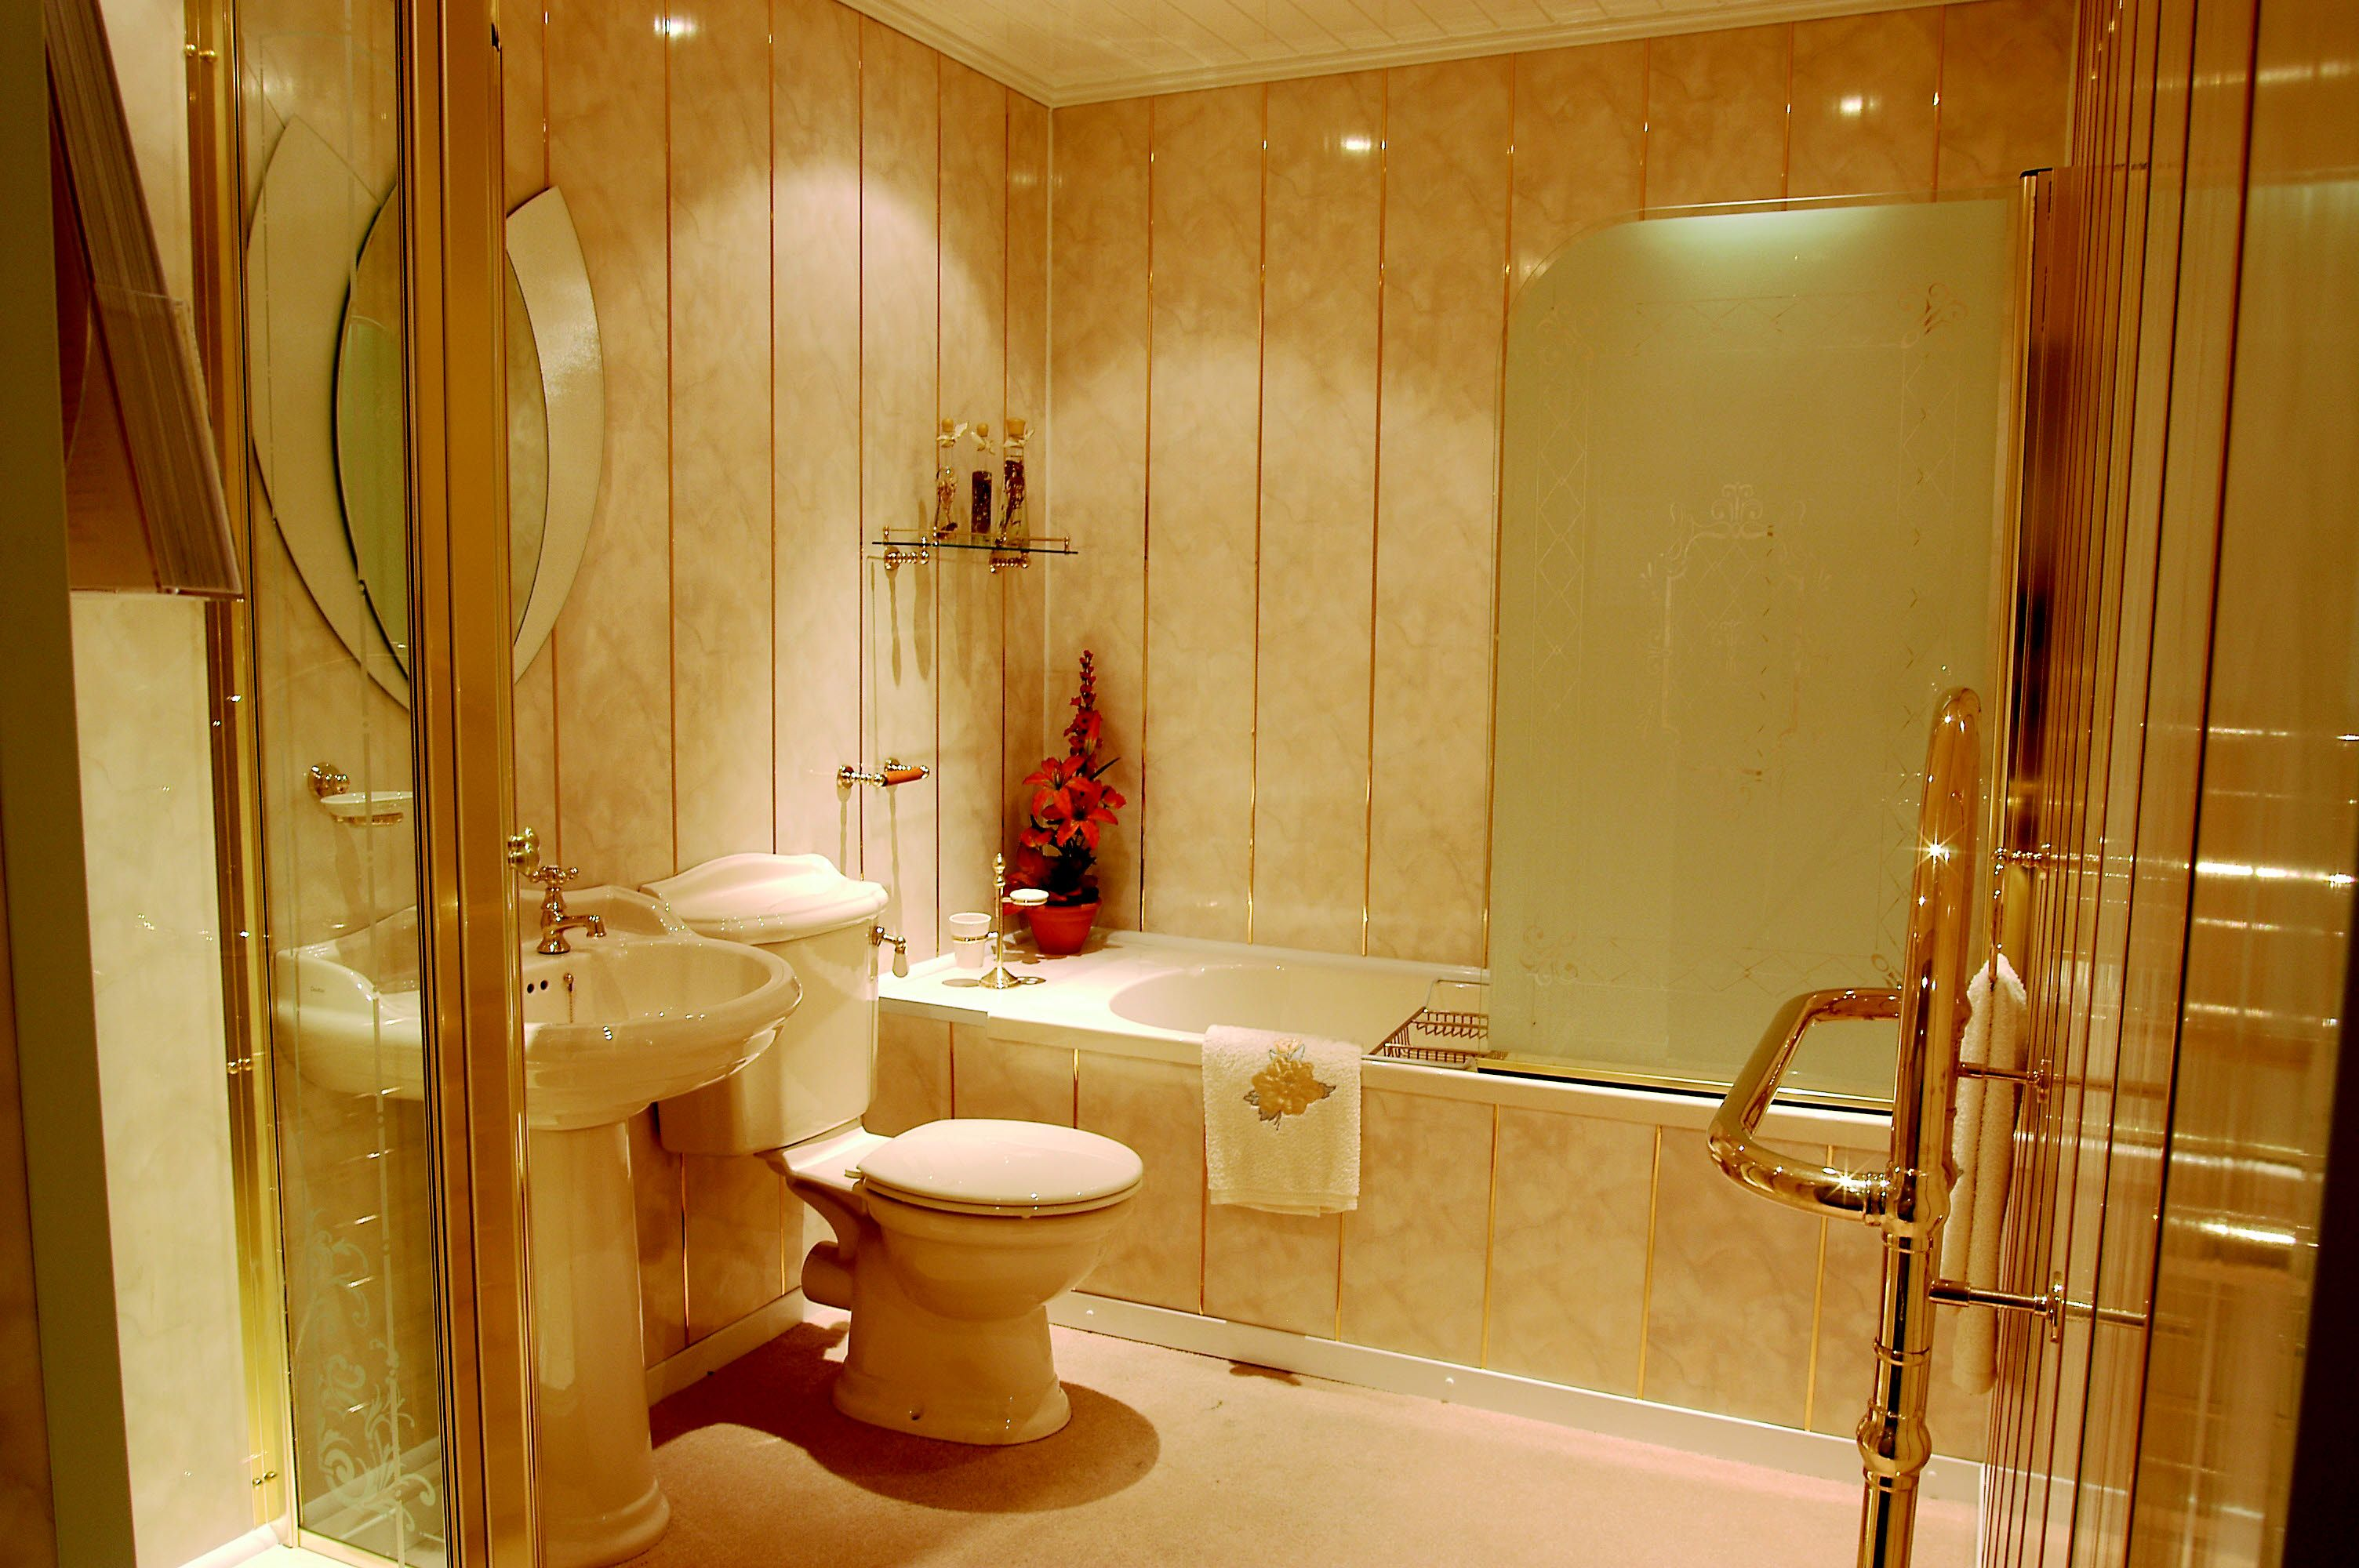 Nice Decorative Panels For Bathroom Walls Images - The Wall Art ...